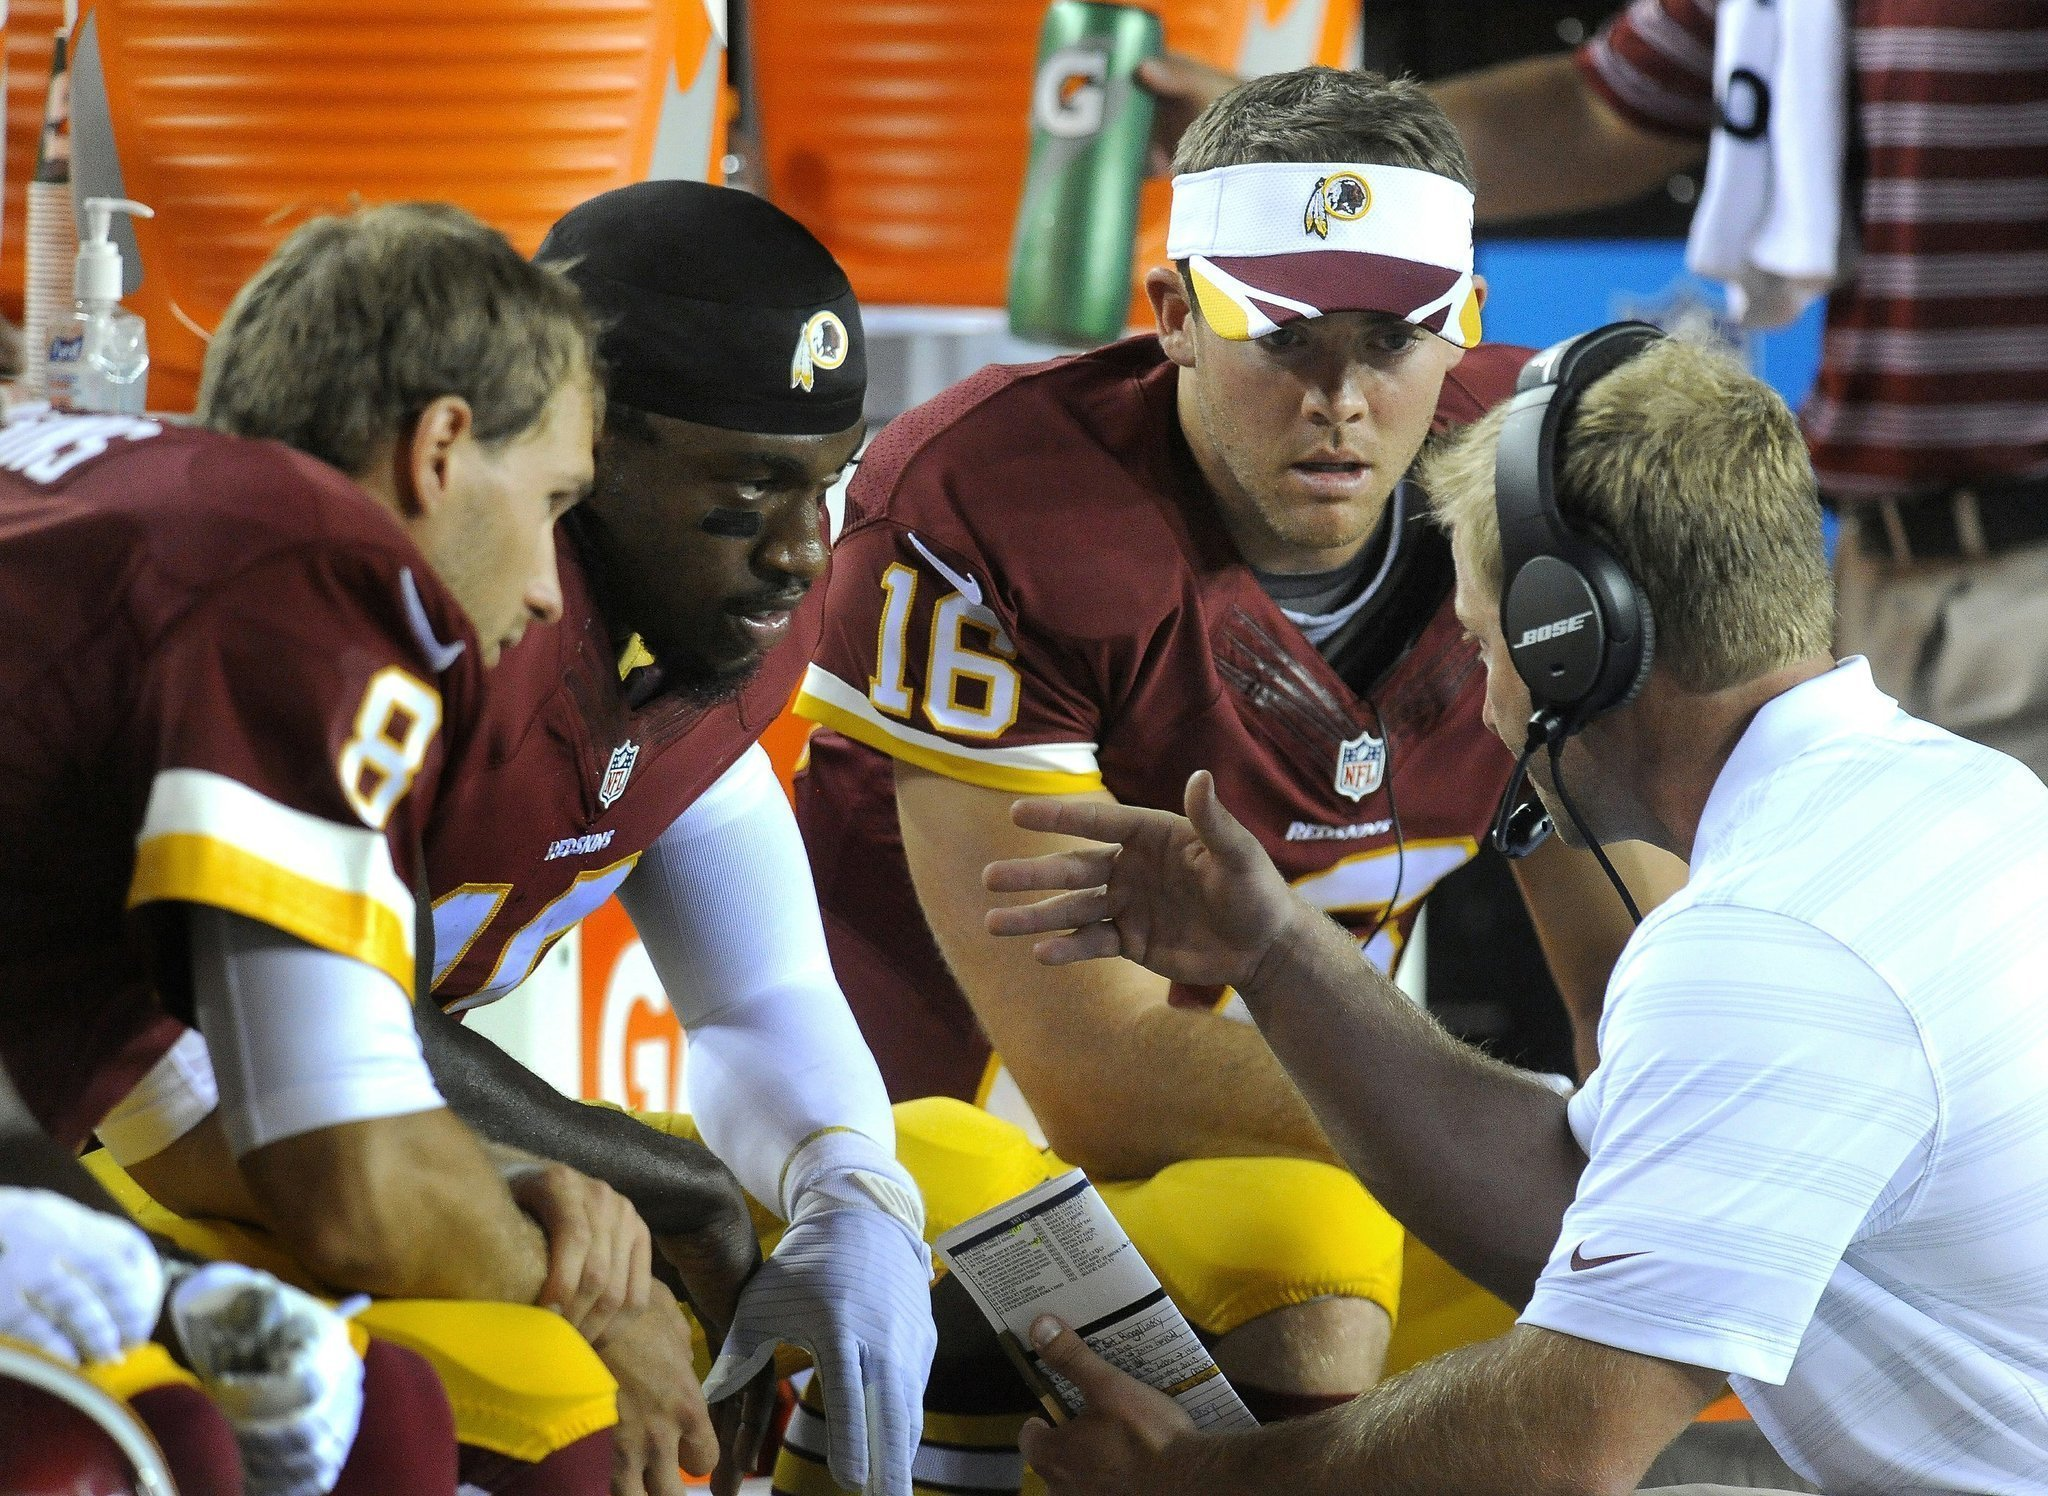 sdut-cousins-to-mccoy-to-rg3-always-some